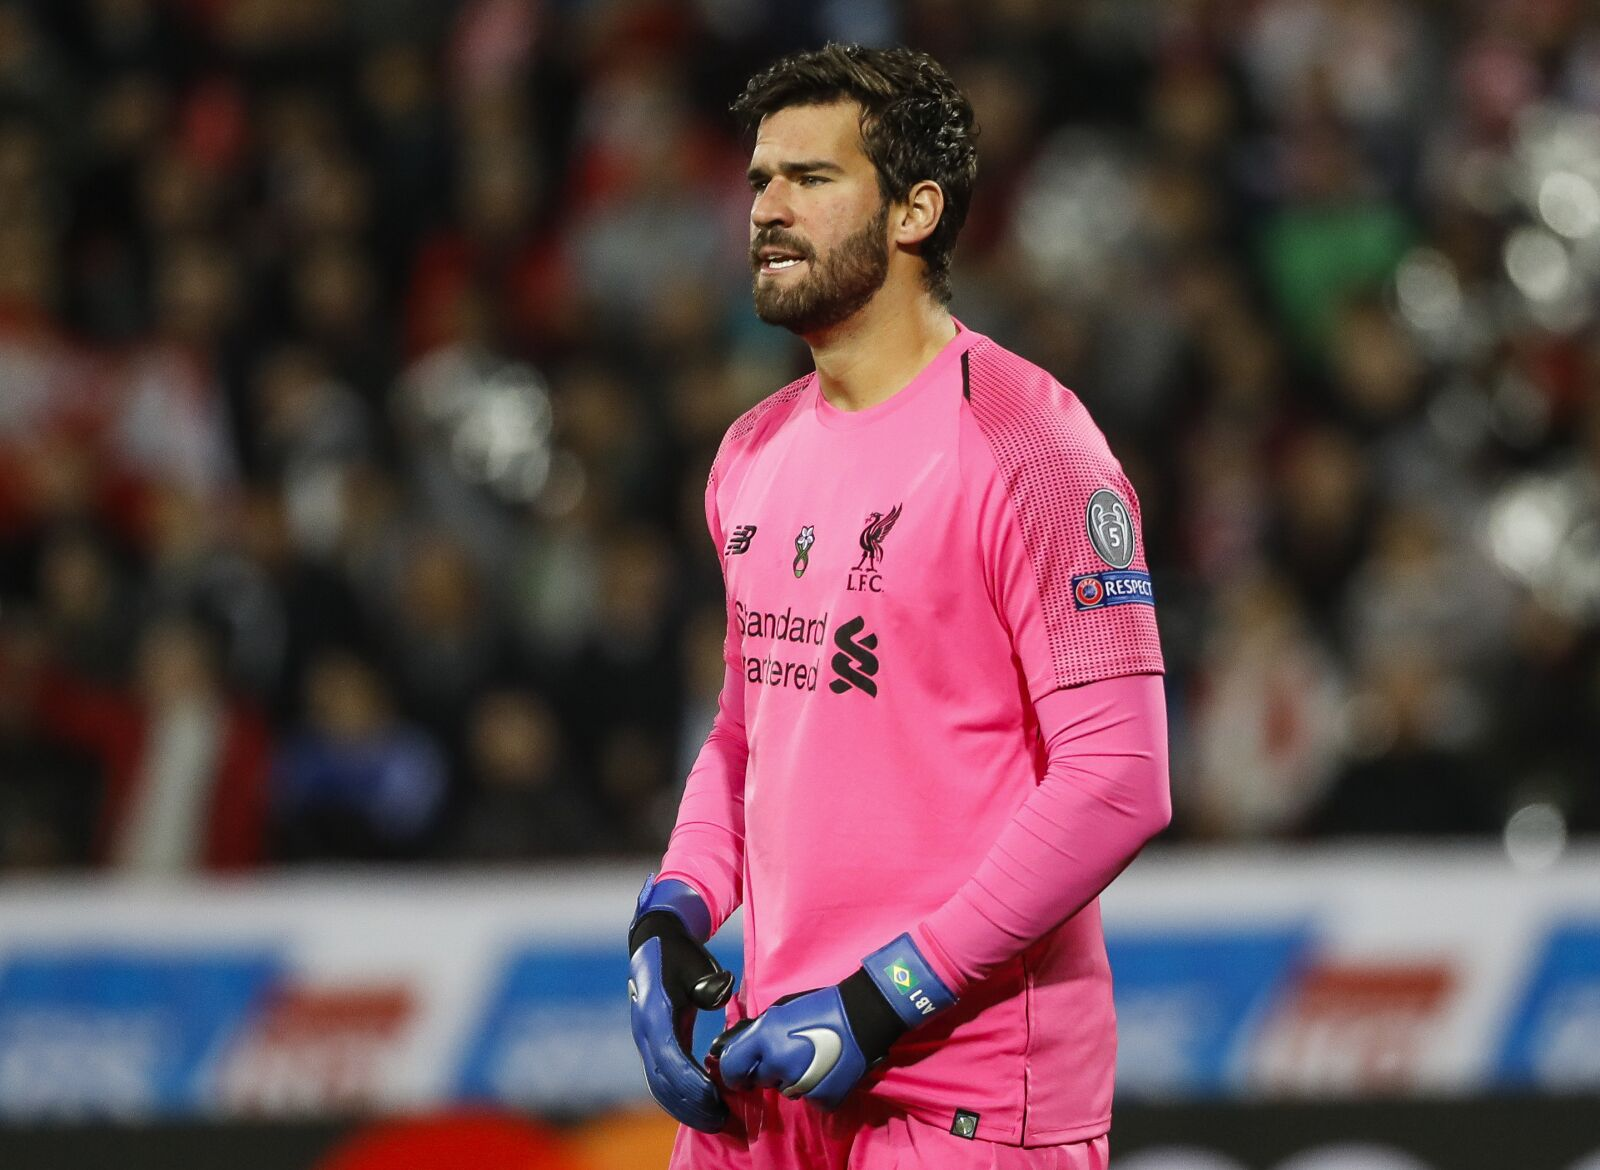 This Stat Shows Just How Crucial Alisson Becker Has Been